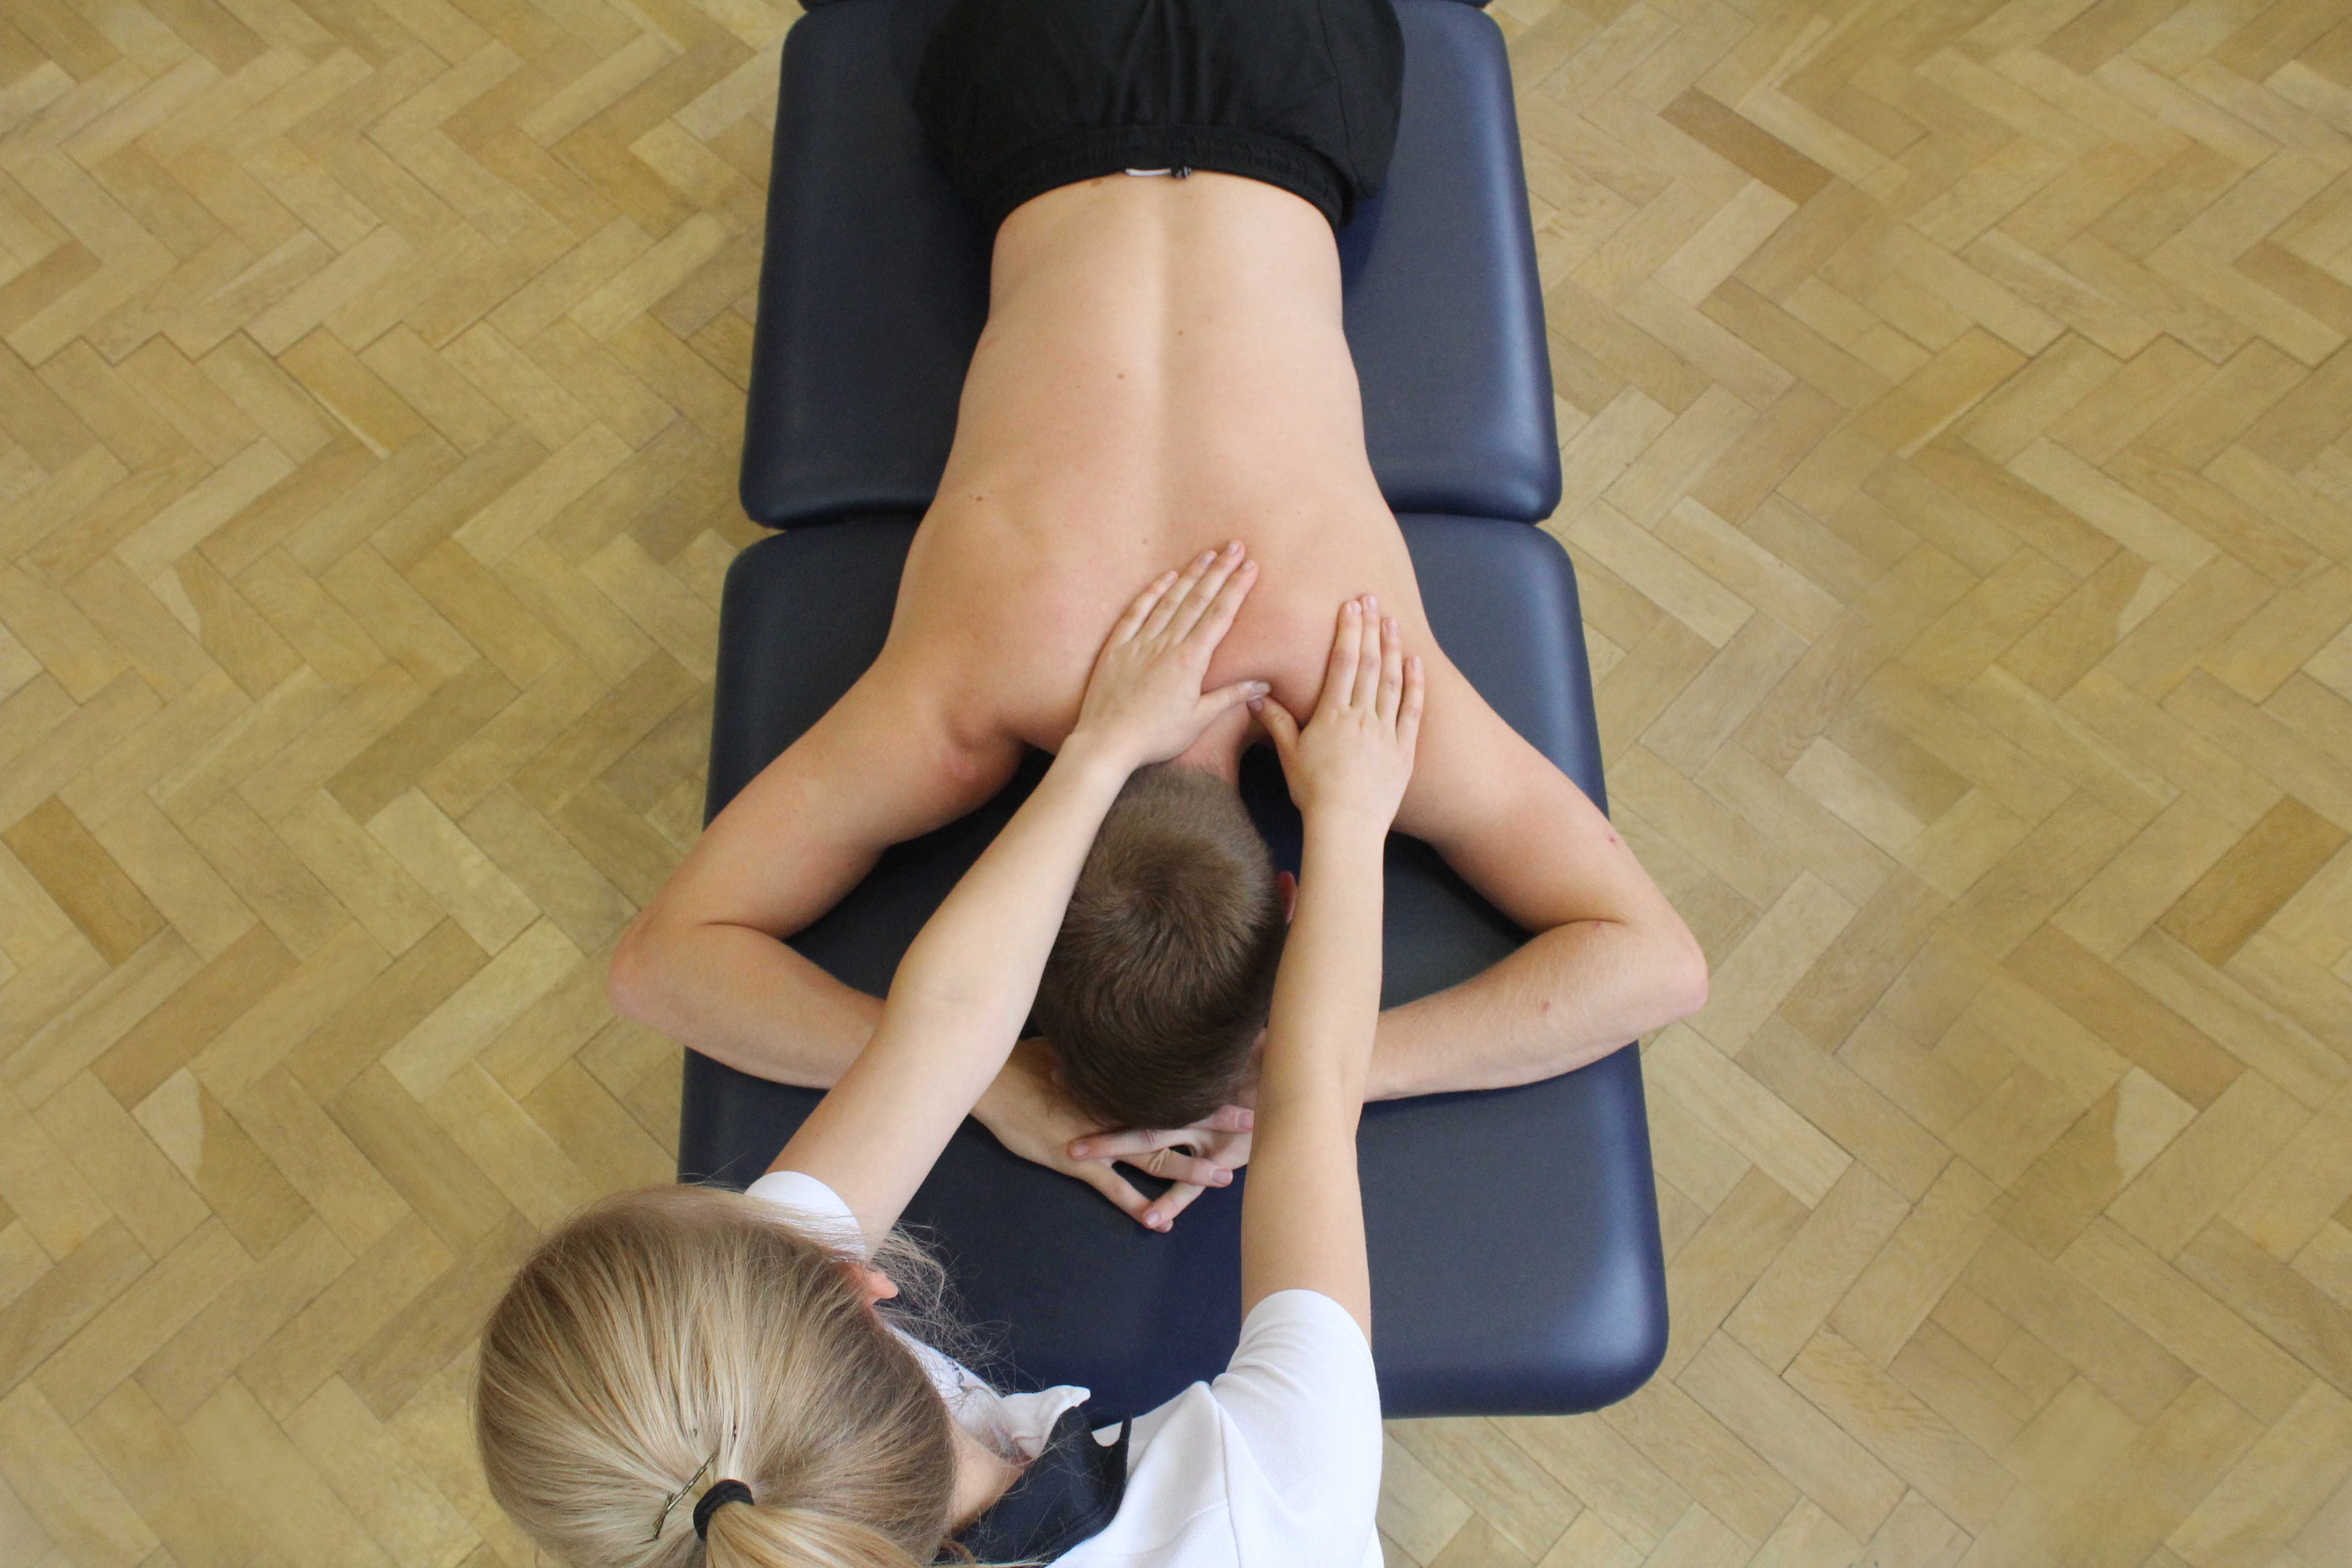 Soft tissue massage of trapezius muscle